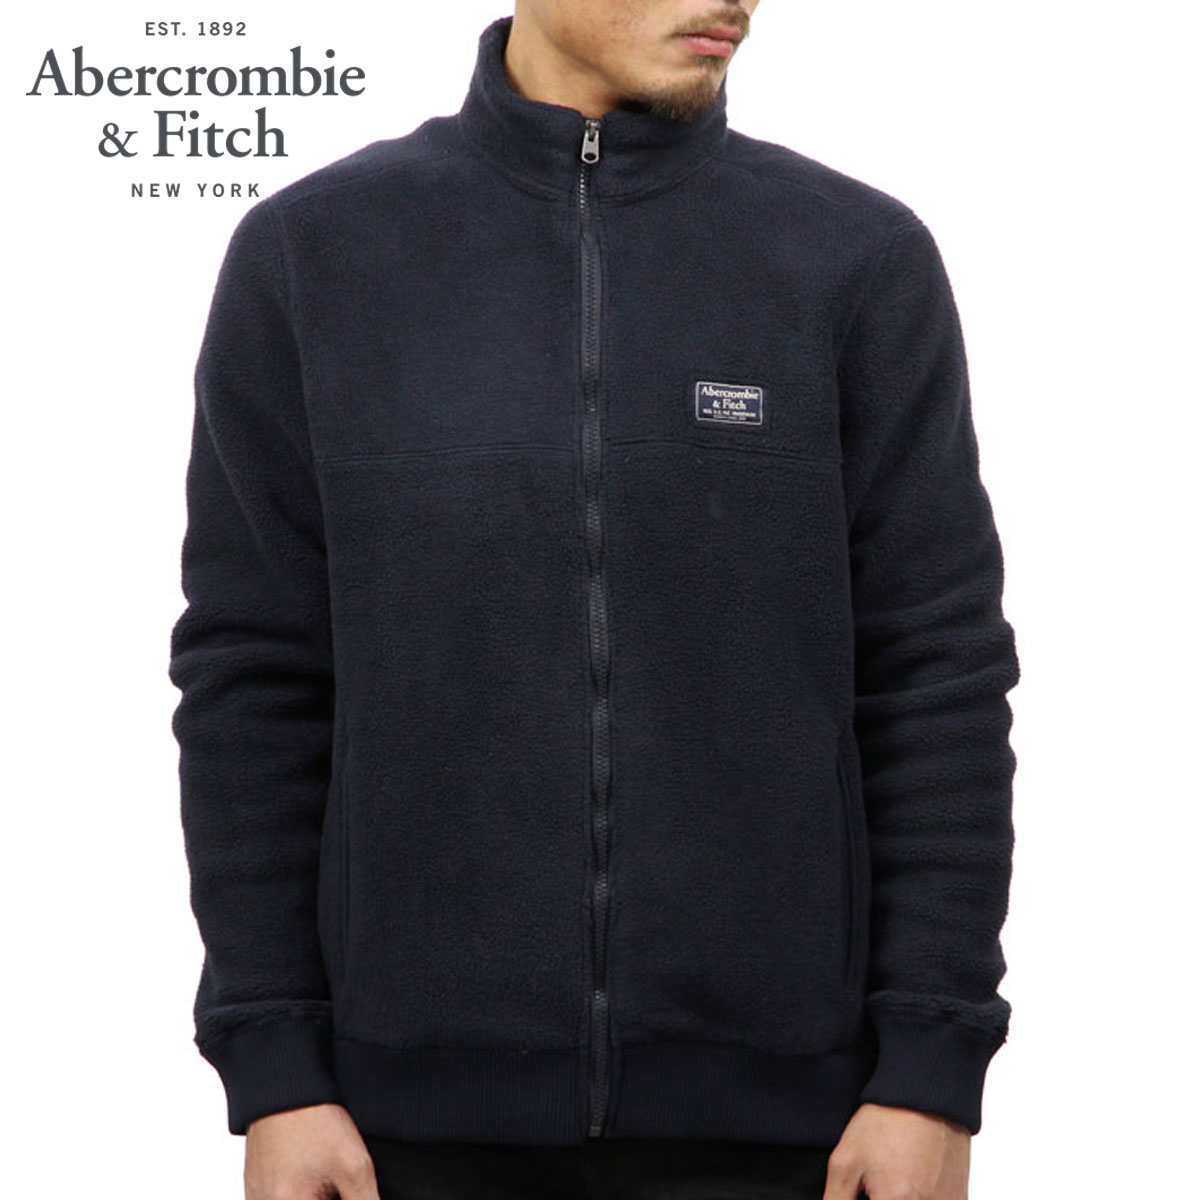 アバクロ Abercrombie&Fitch 正規品 メンズ アウタージャケット TRAIL FLEECE FULL-ZIP MOCK NECK JACKET 122-232-0712-200 D00S20